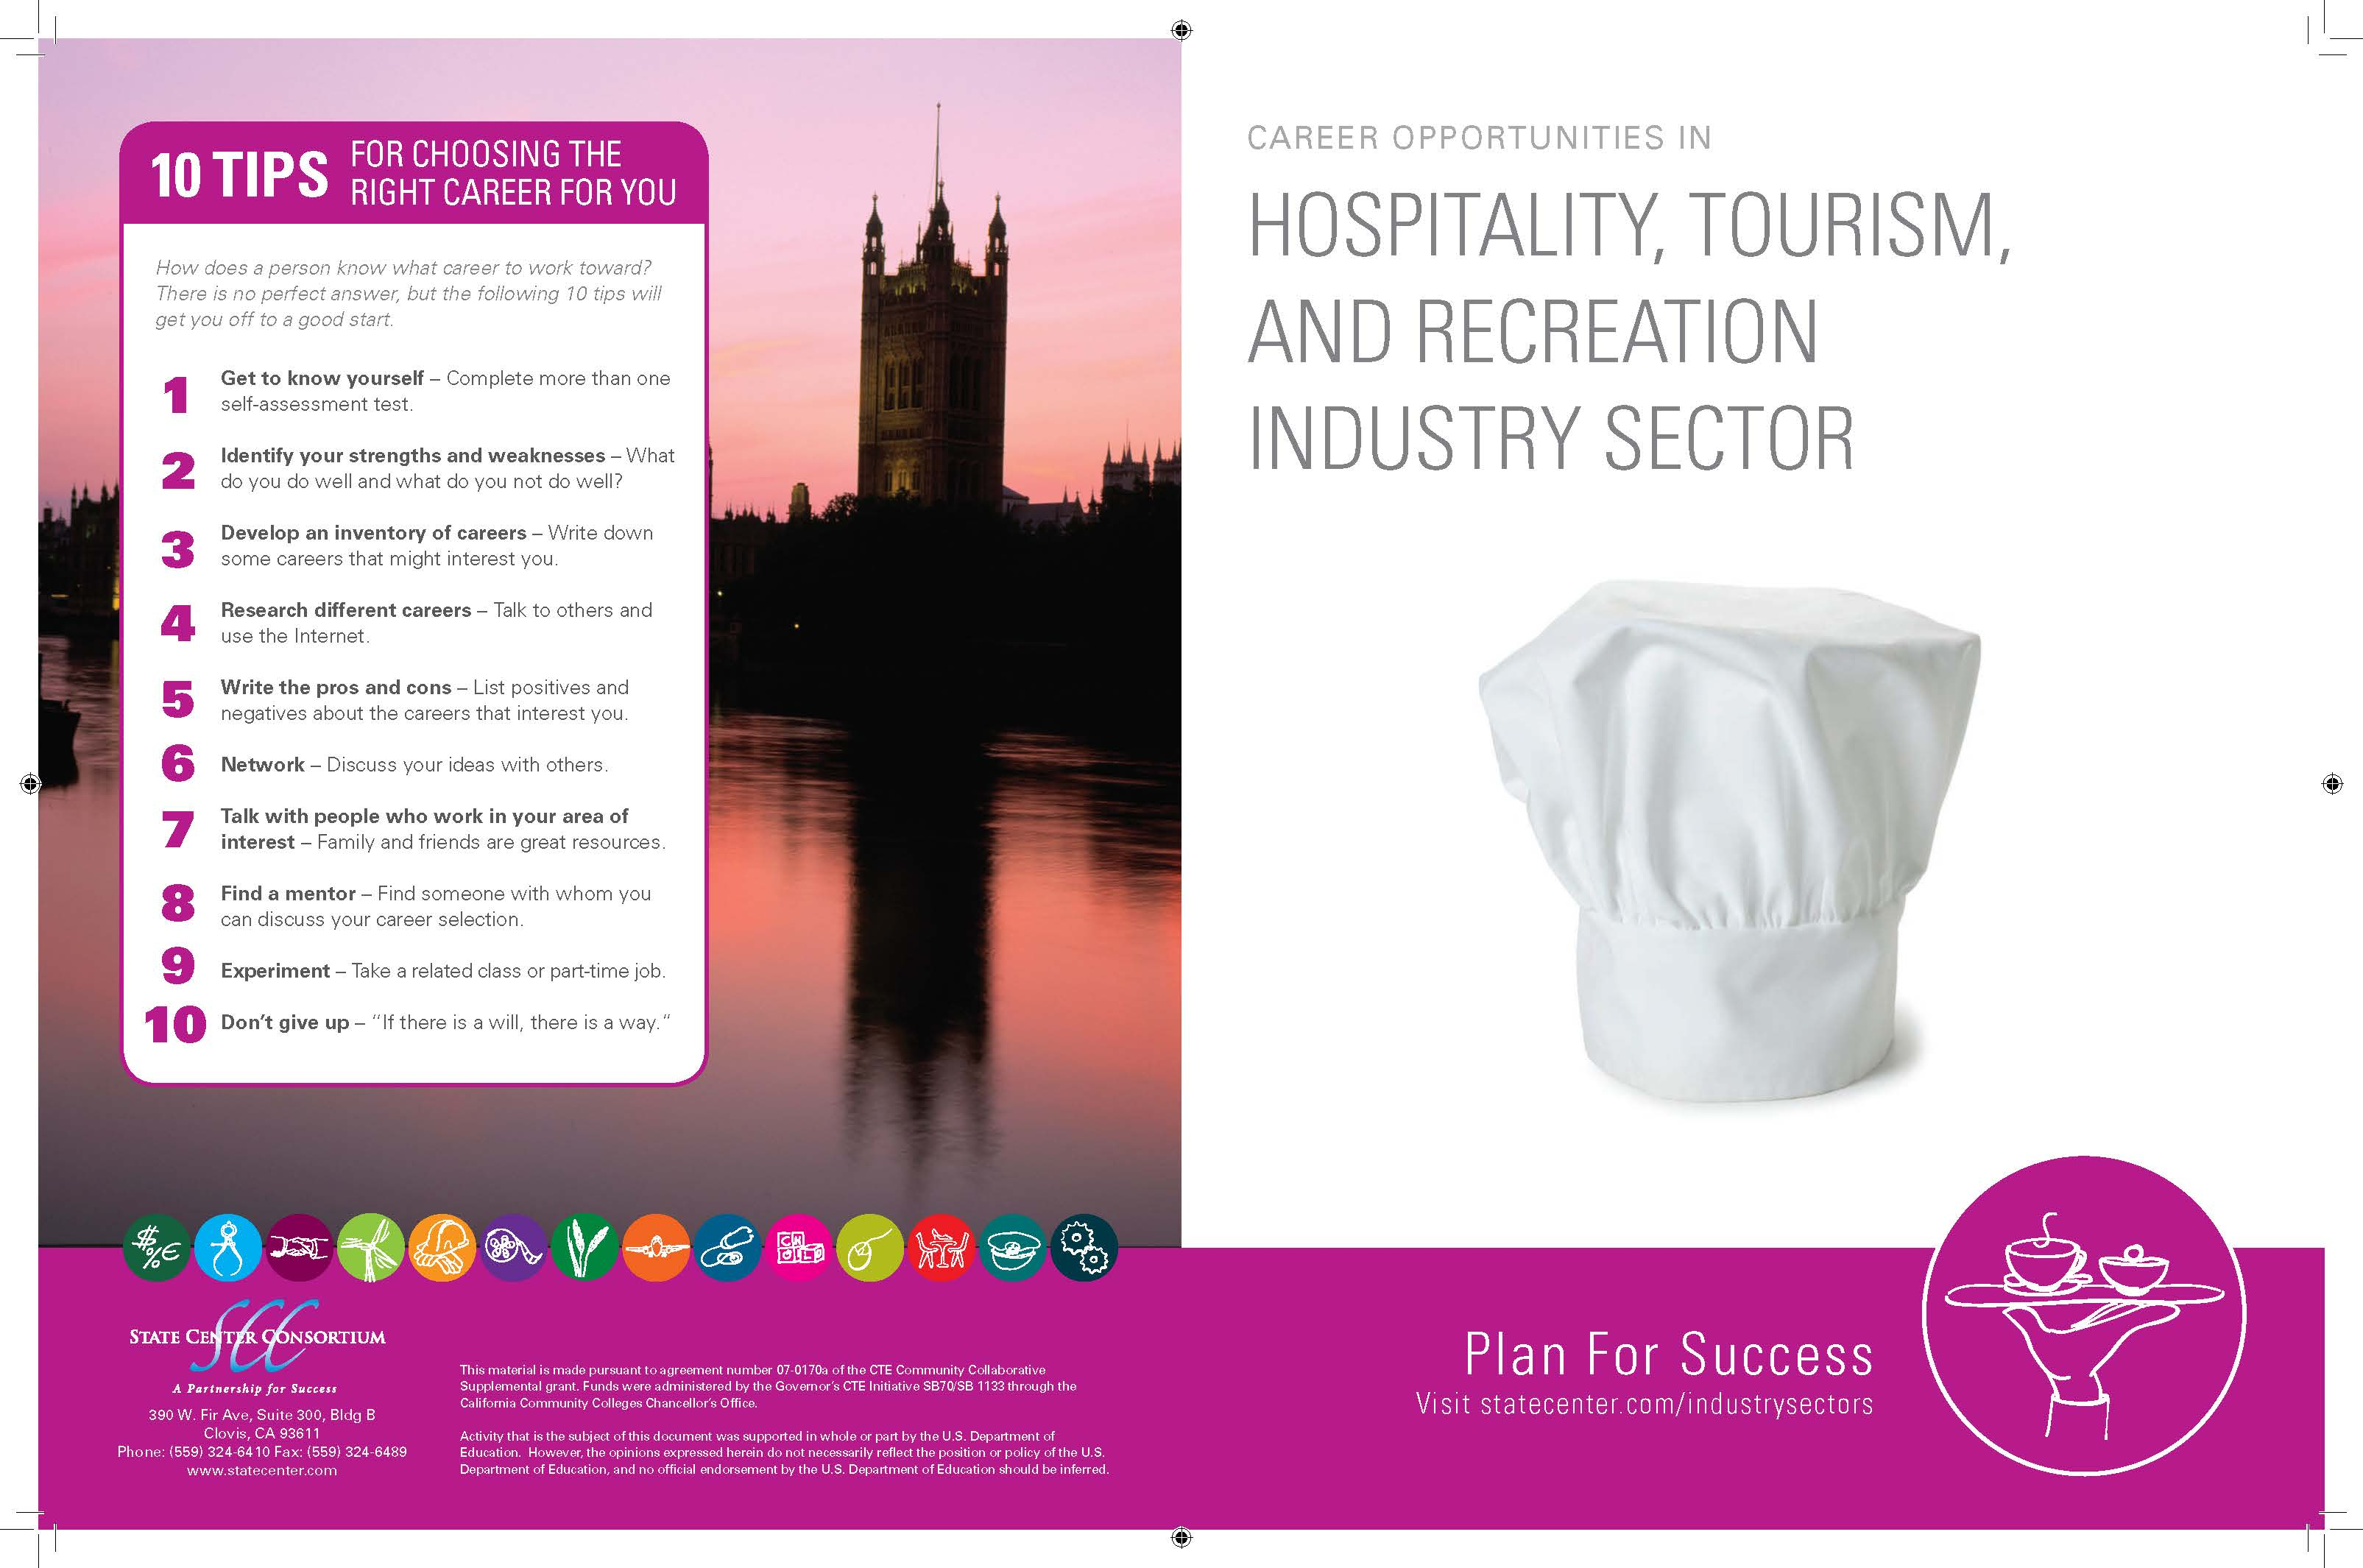 heremans tiffany overview brochure hospitality tourism and recreation